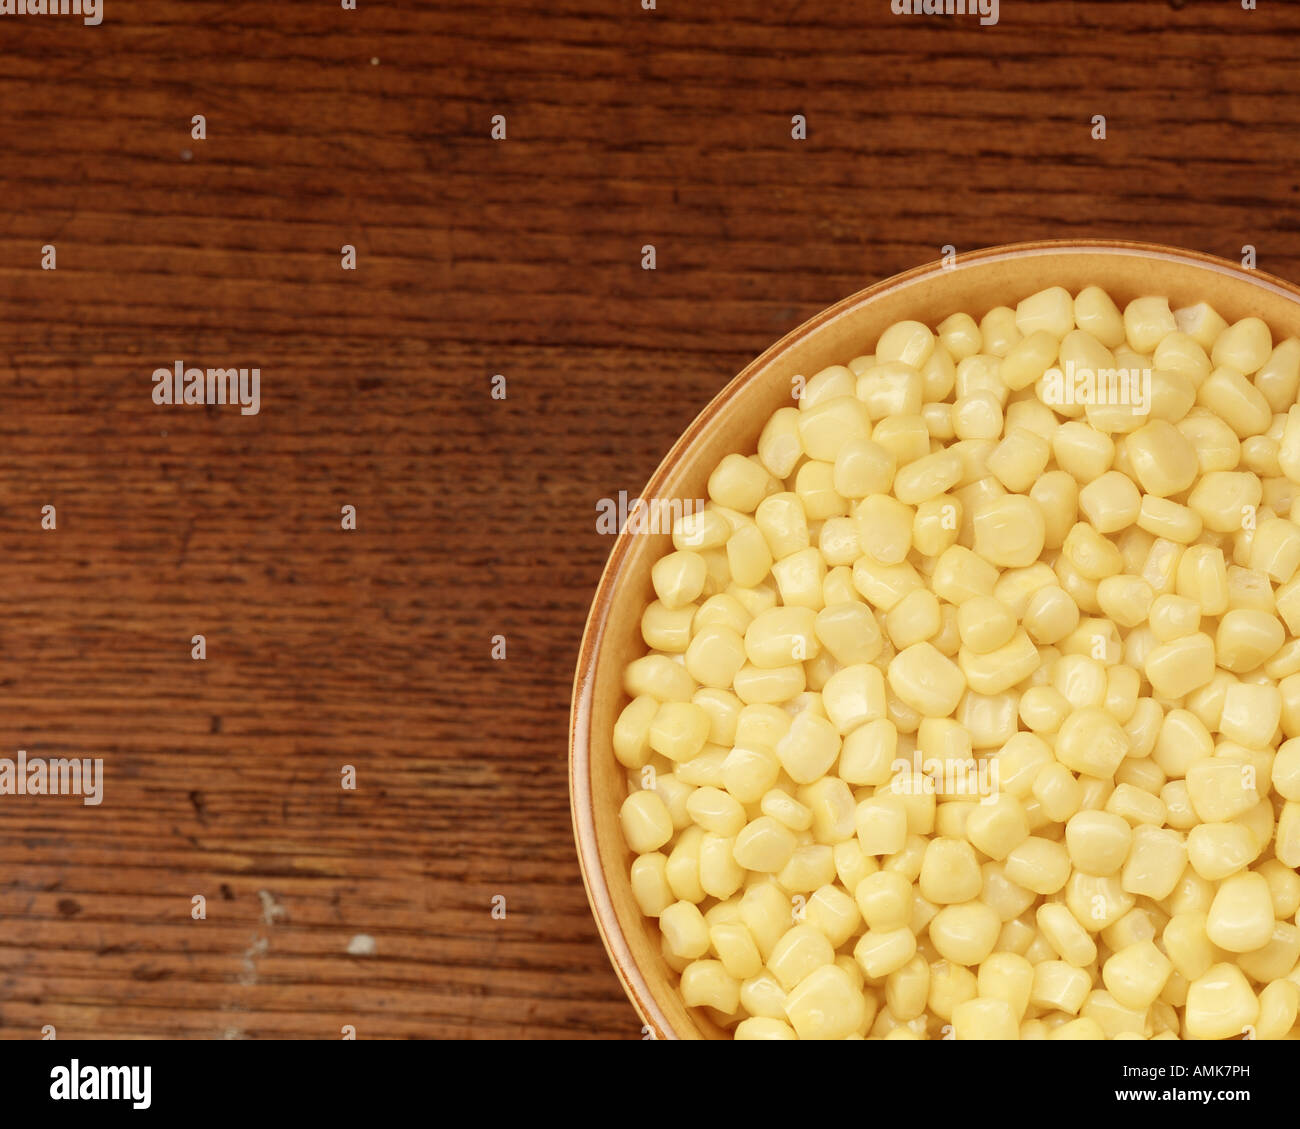 whole kernel corn vegetable food yellow copy space - Stock Image